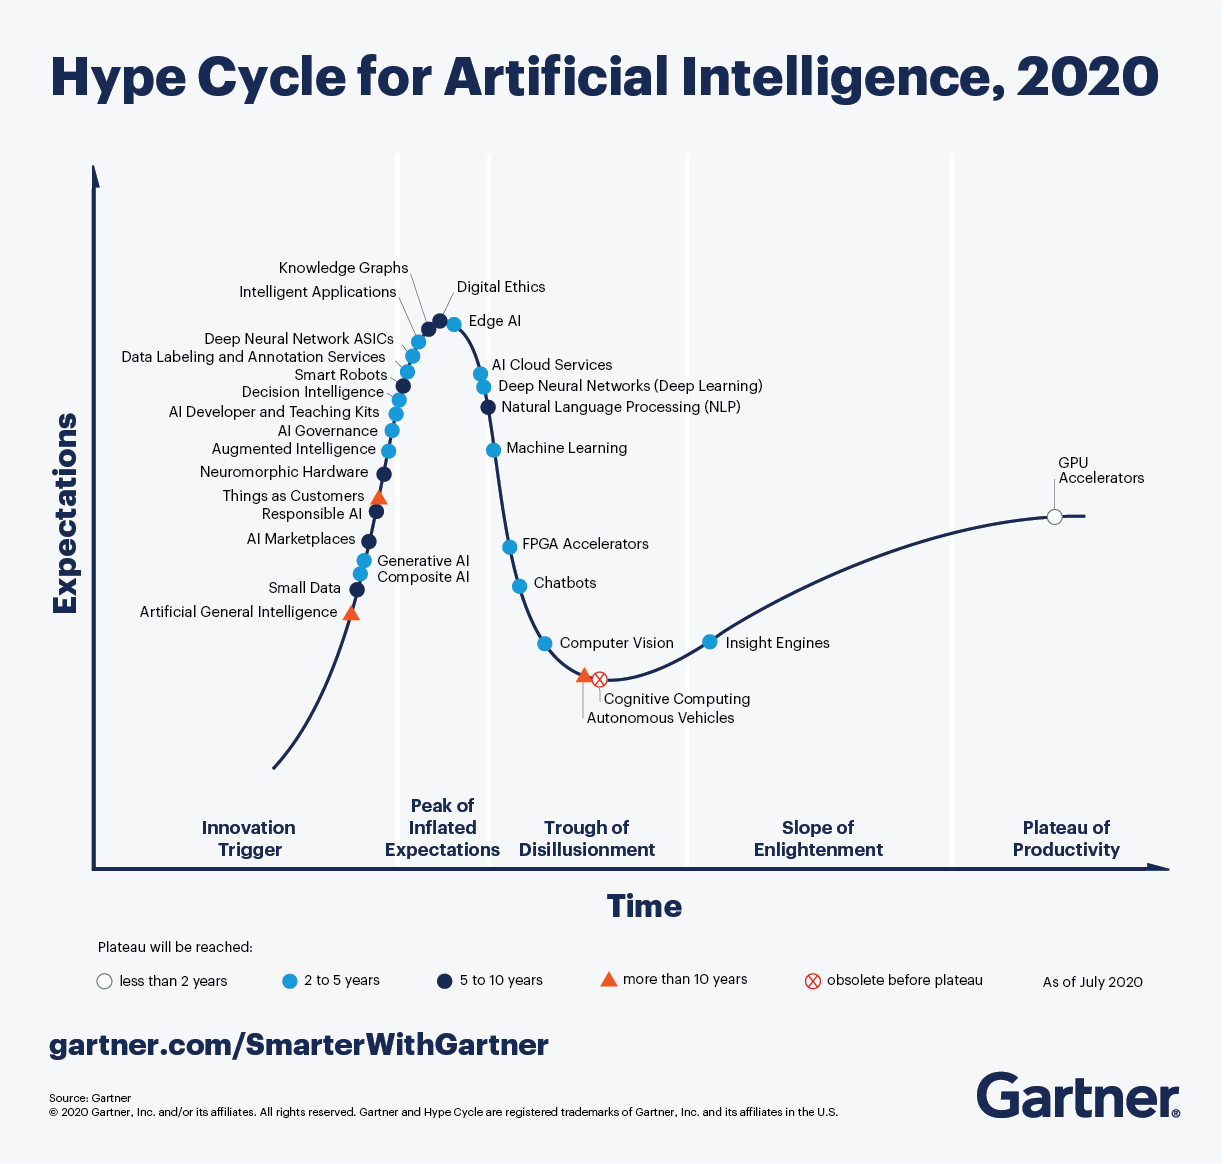 Gartner_Hype_Cycle_for_Artificial_Intelligence_2020